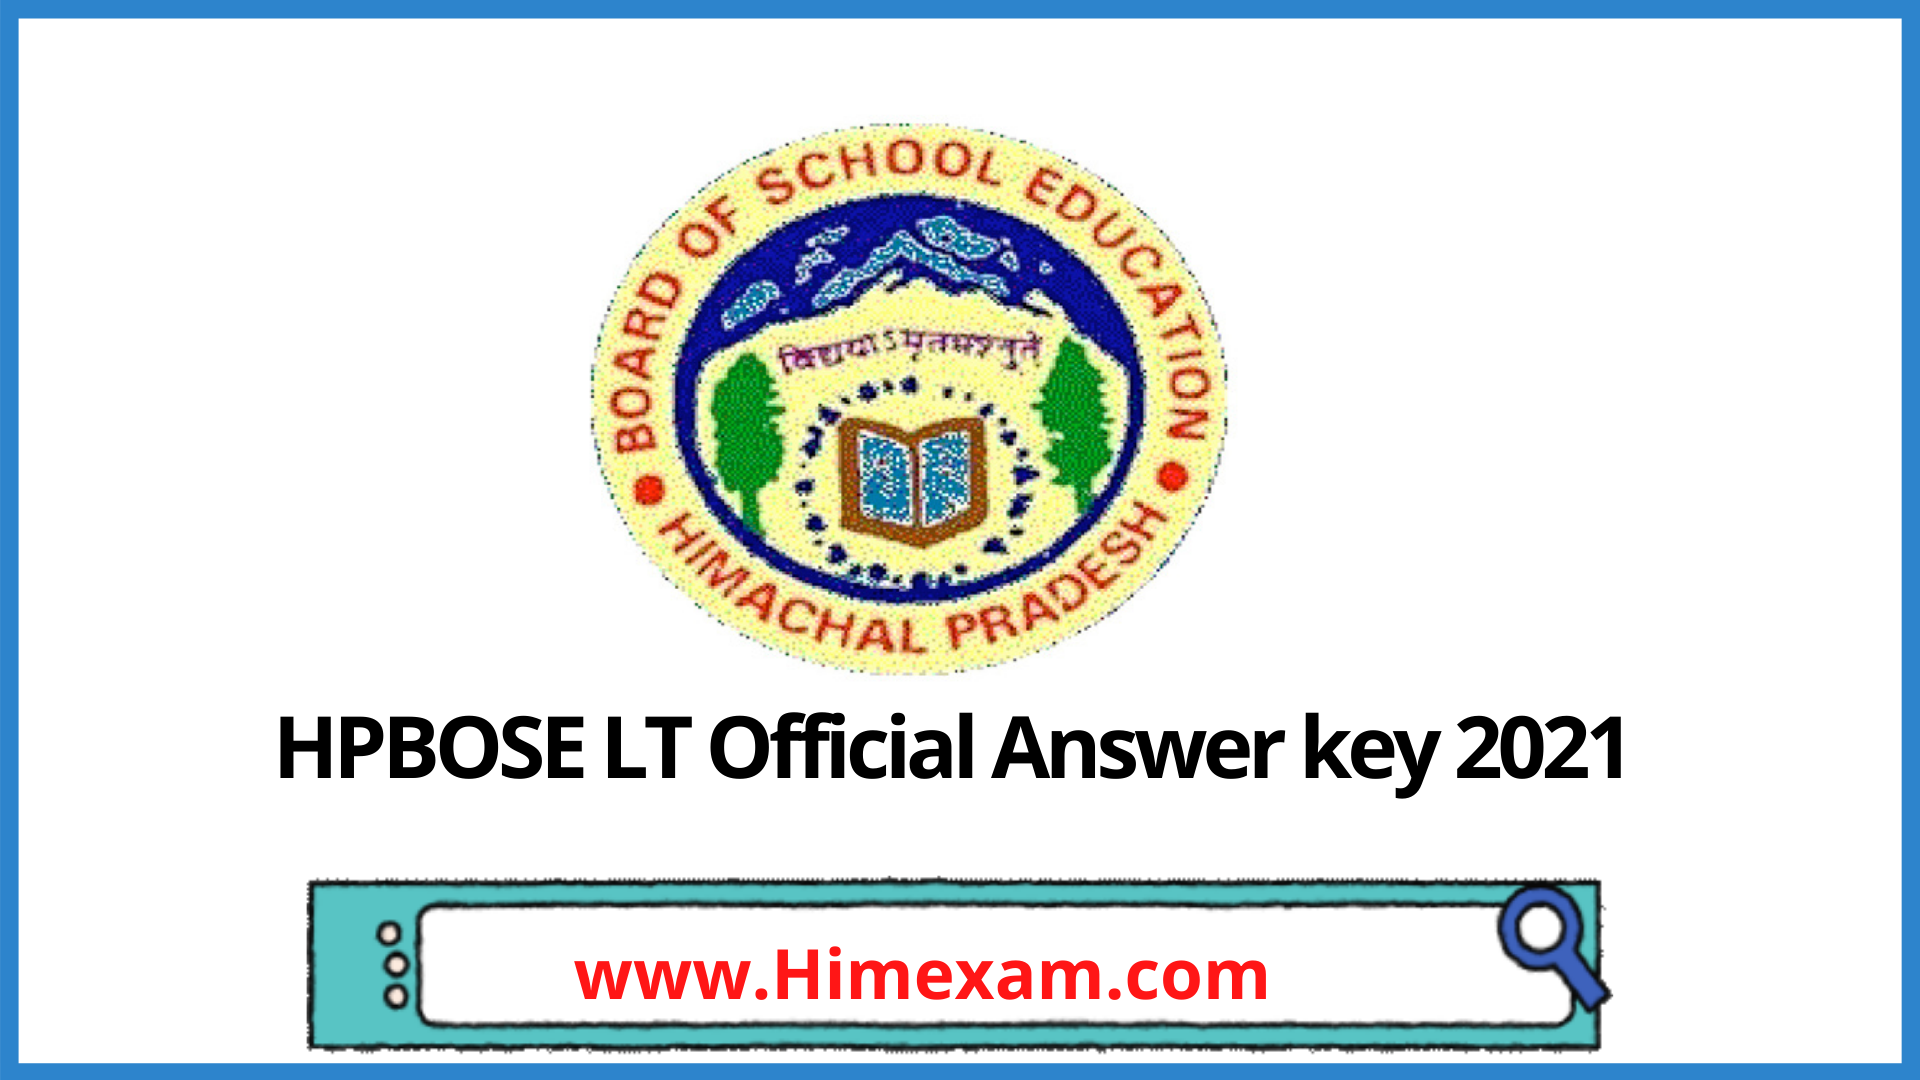 HPBOSE LT Official Answer key 2021